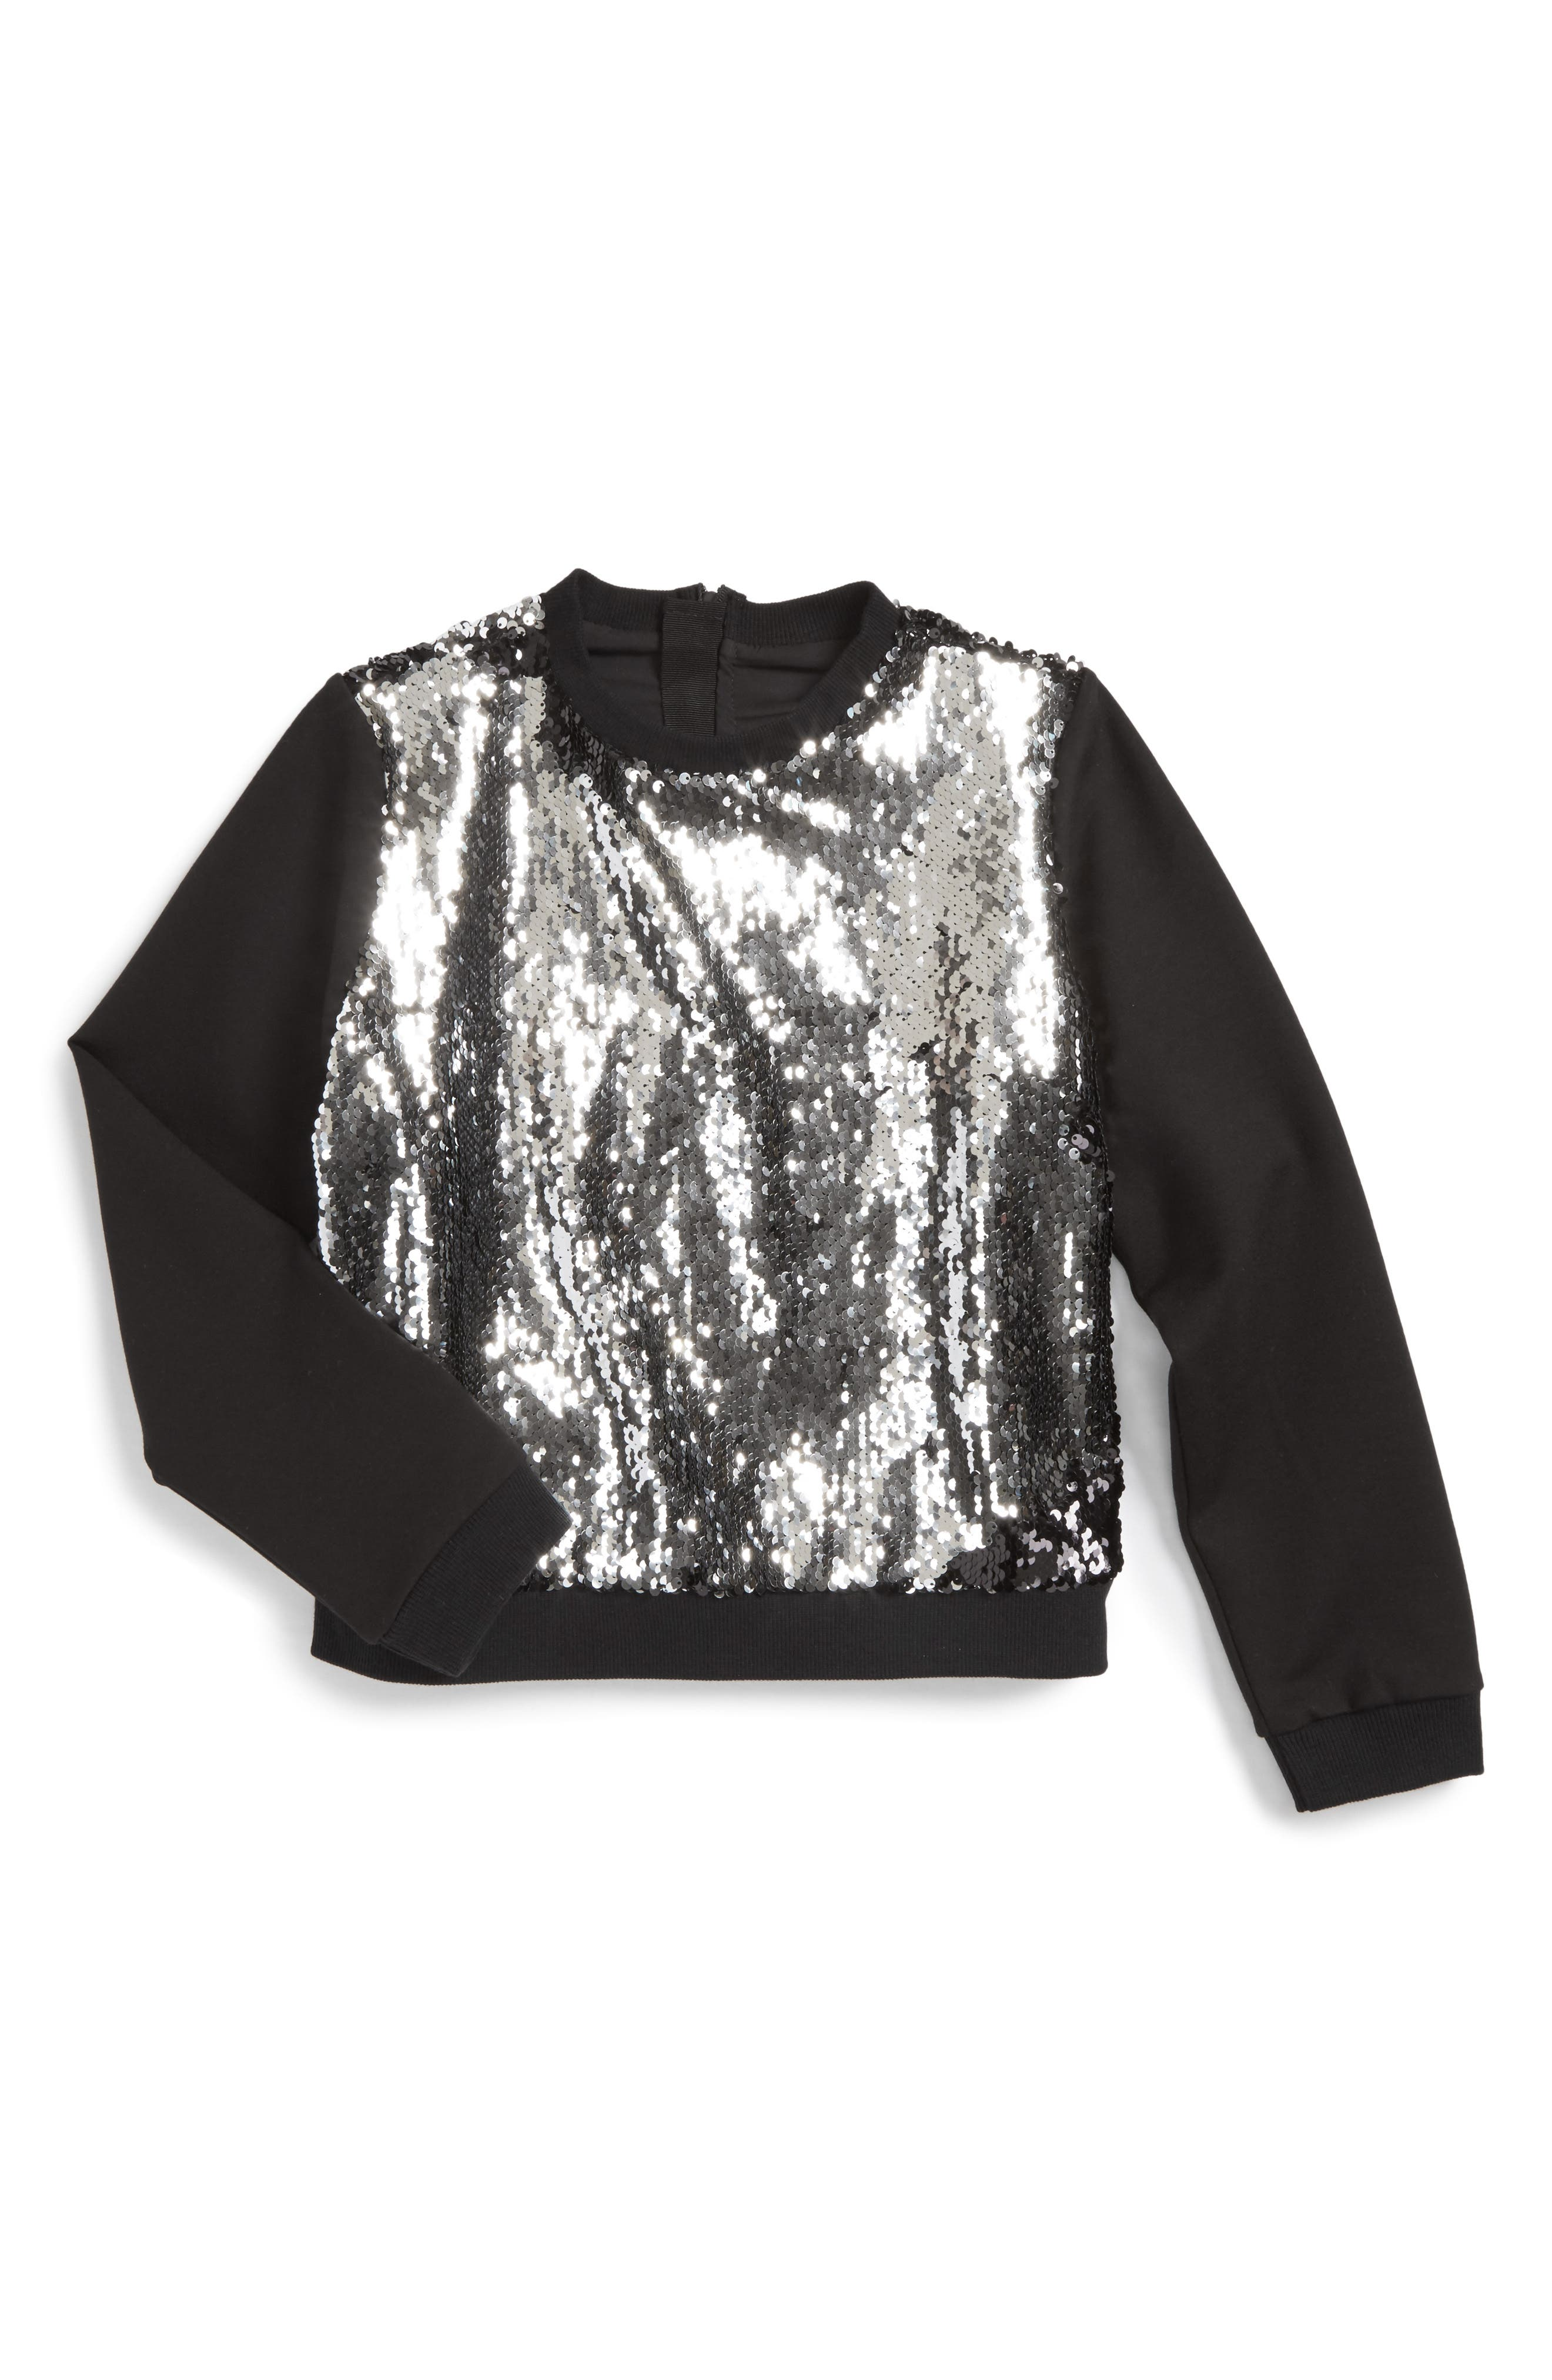 Milly Minis Sequin Sweatshirt (Toddler Girls, Little Girls & Big Girls)